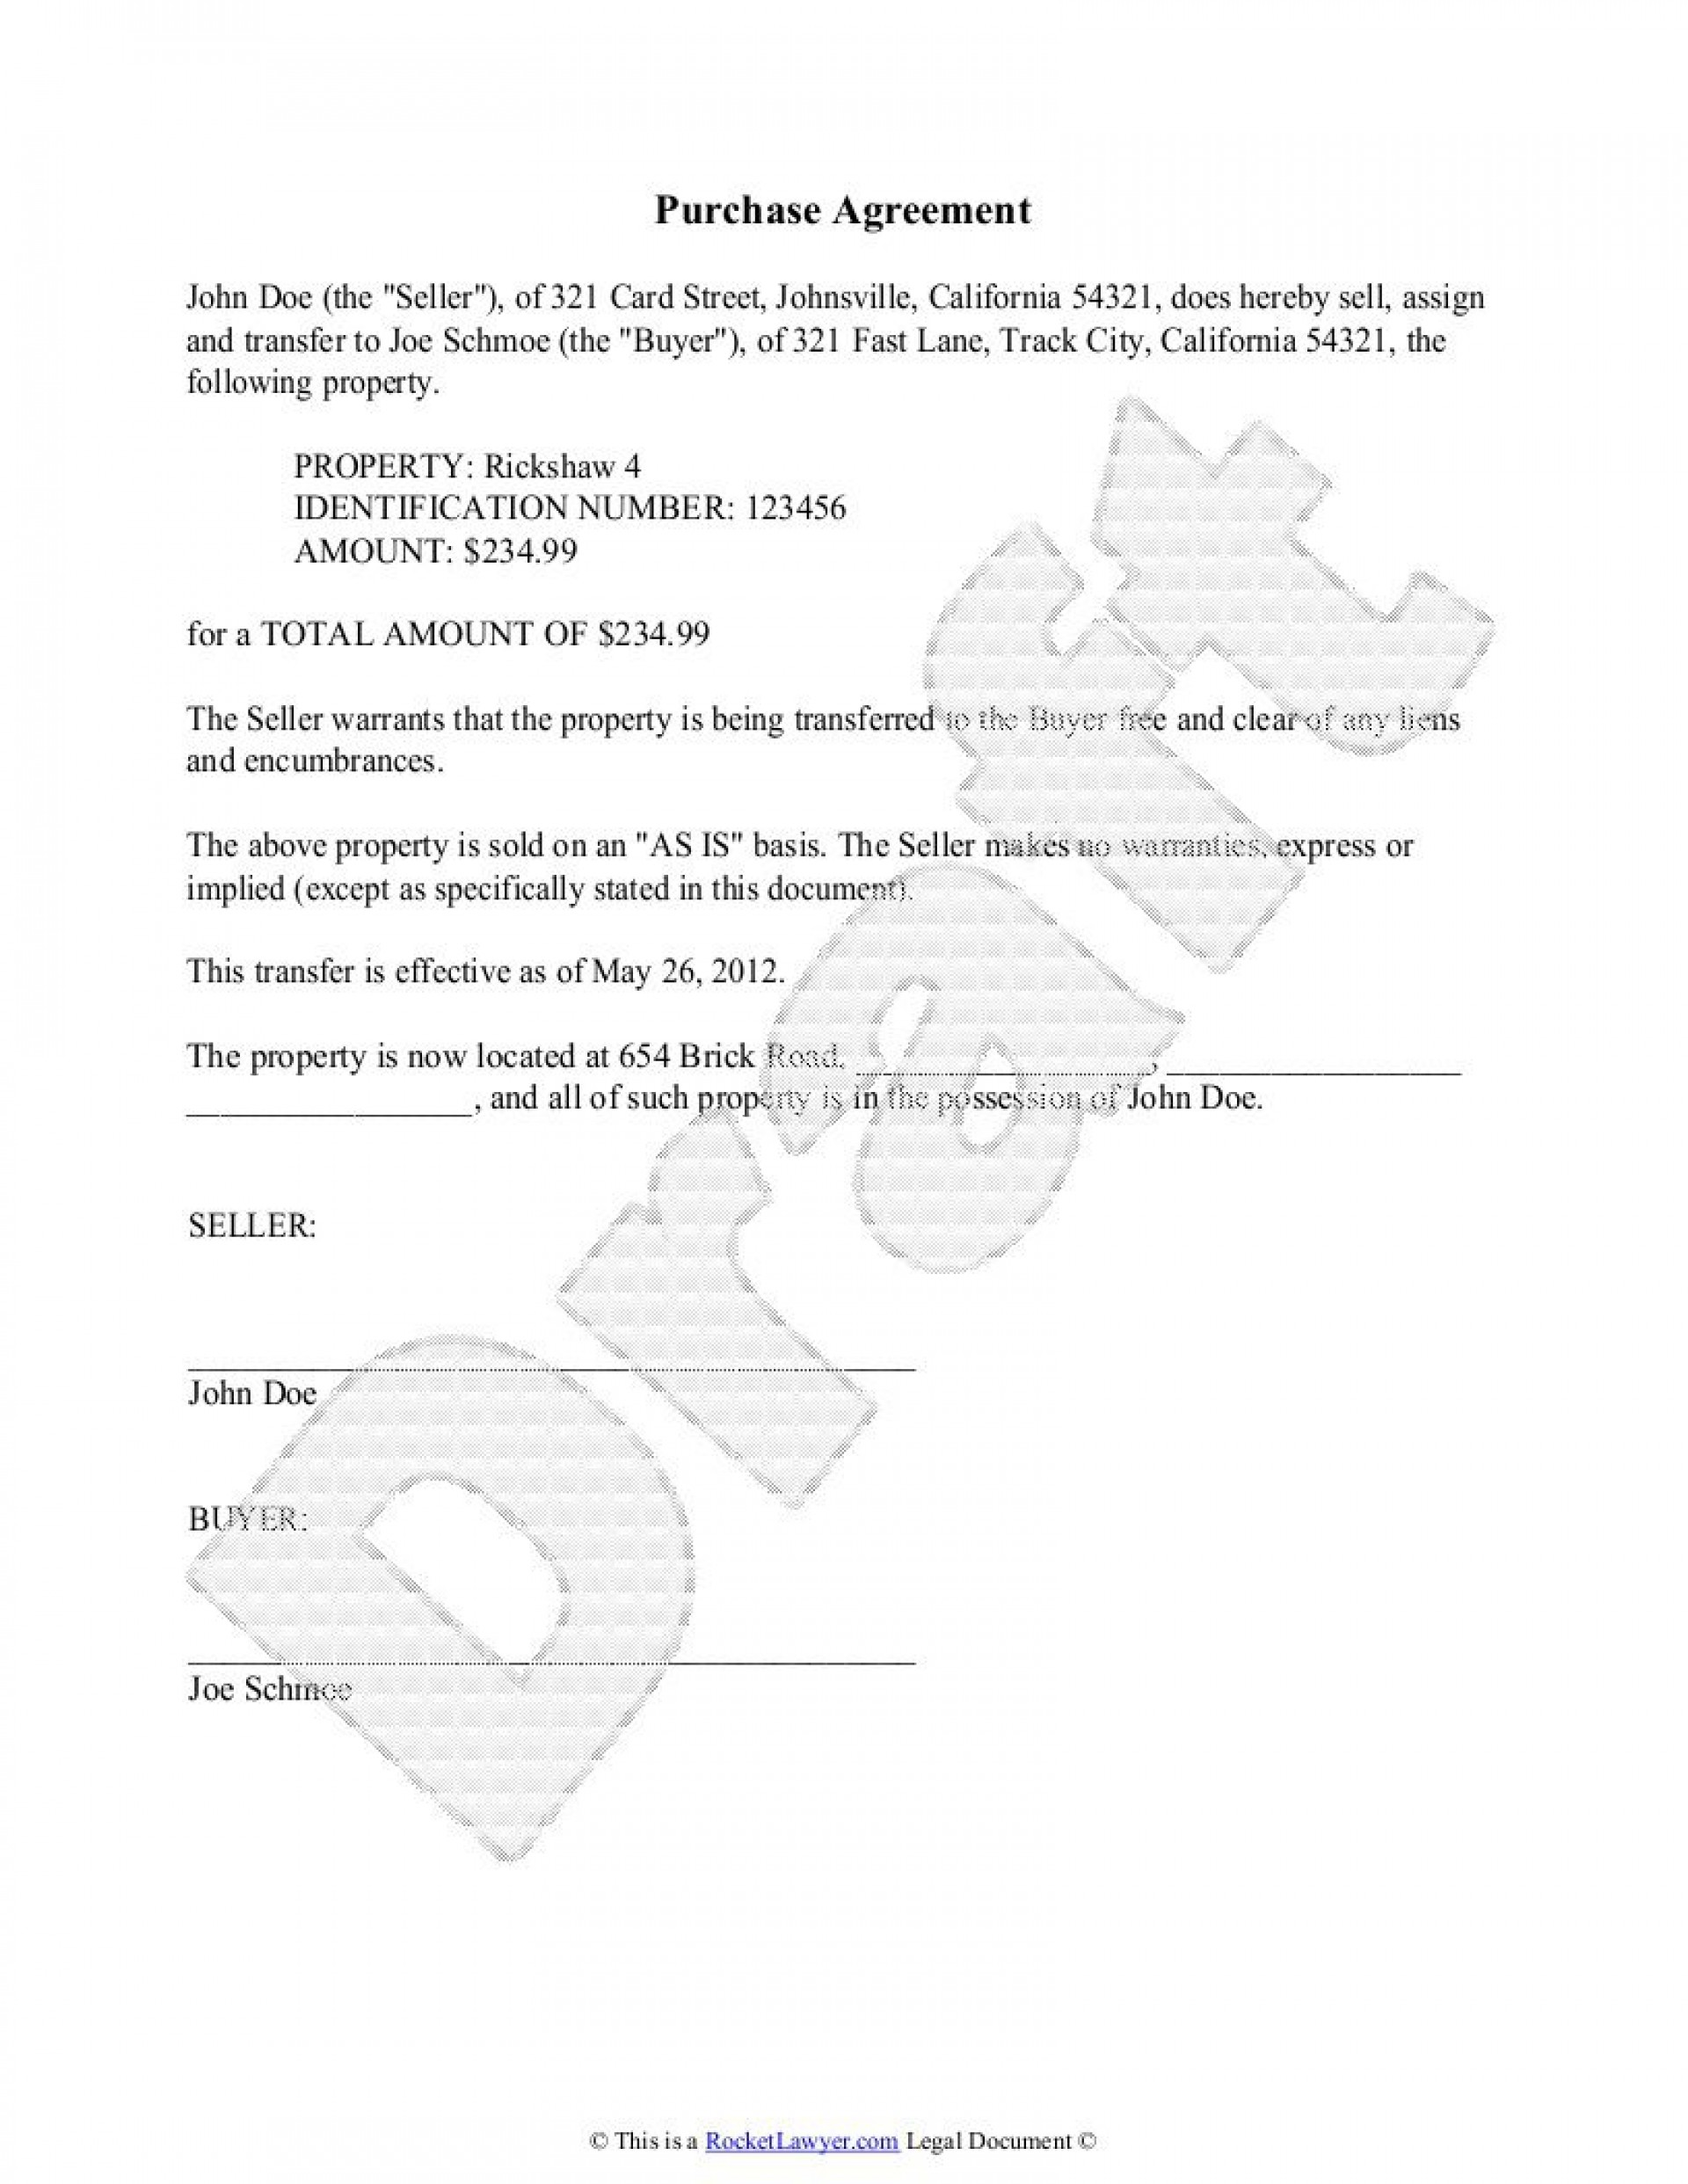 004 Archaicawful Purchase Sale Agreement Template Photo  Uk & Nz Free Busines And1920